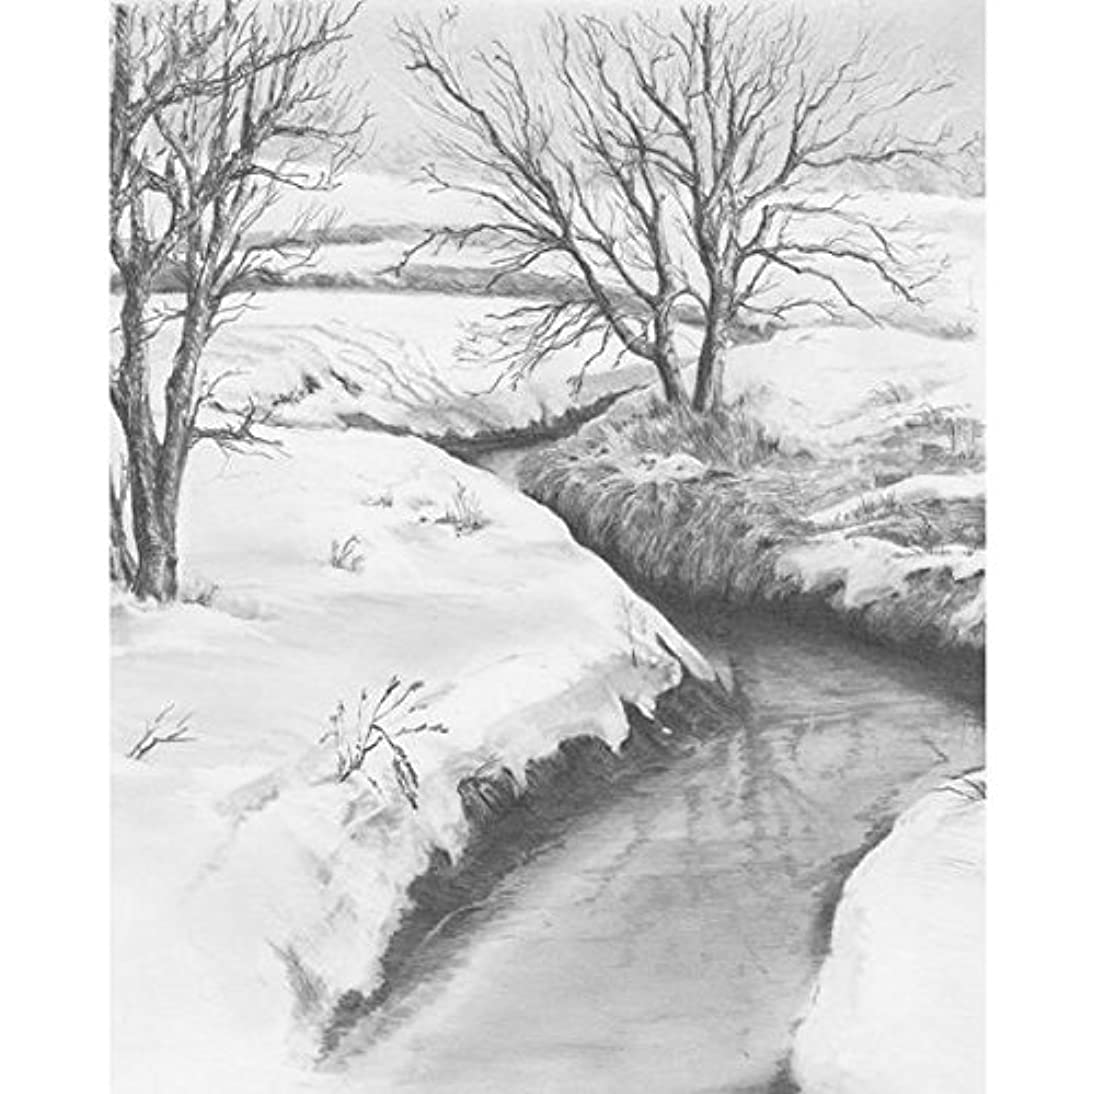 ROYAL BRUSH Sketching Made Easy Kit, 9 by 12-Inch, Winter Creek